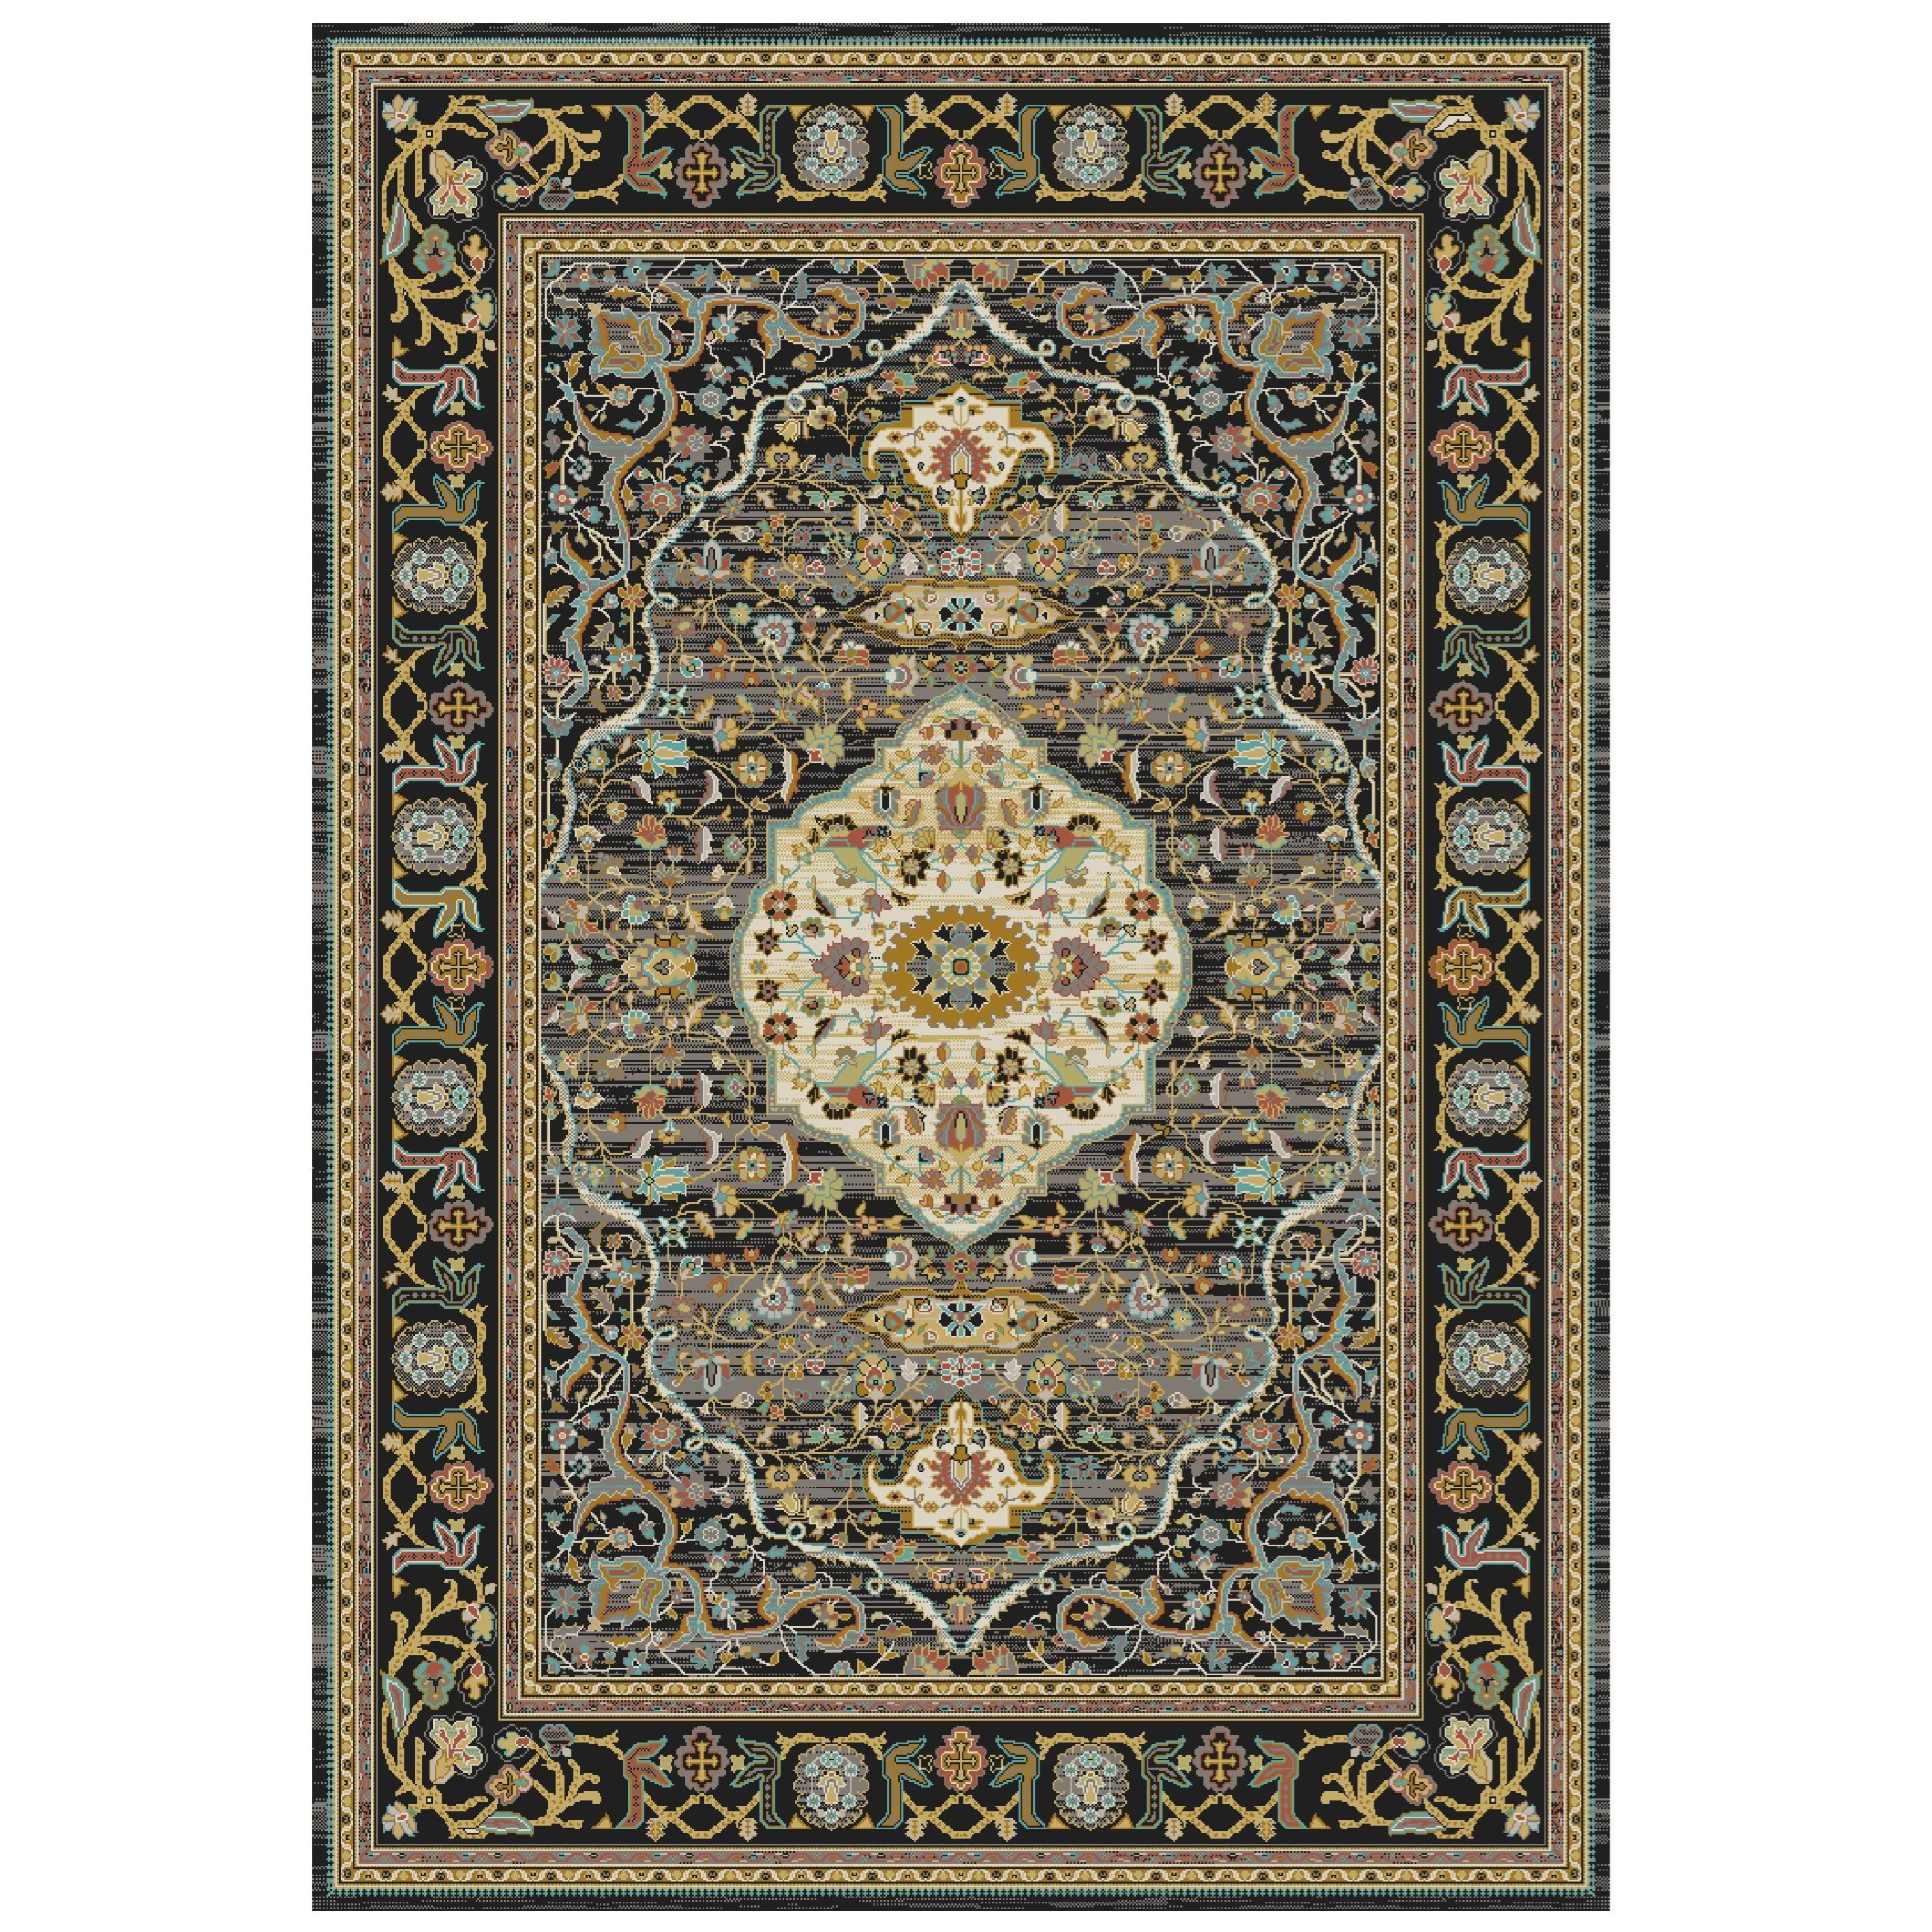 Spice Market 5'3x7'10 Petra Charcoal Rug by Karastan Rugs at Darvin Furniture